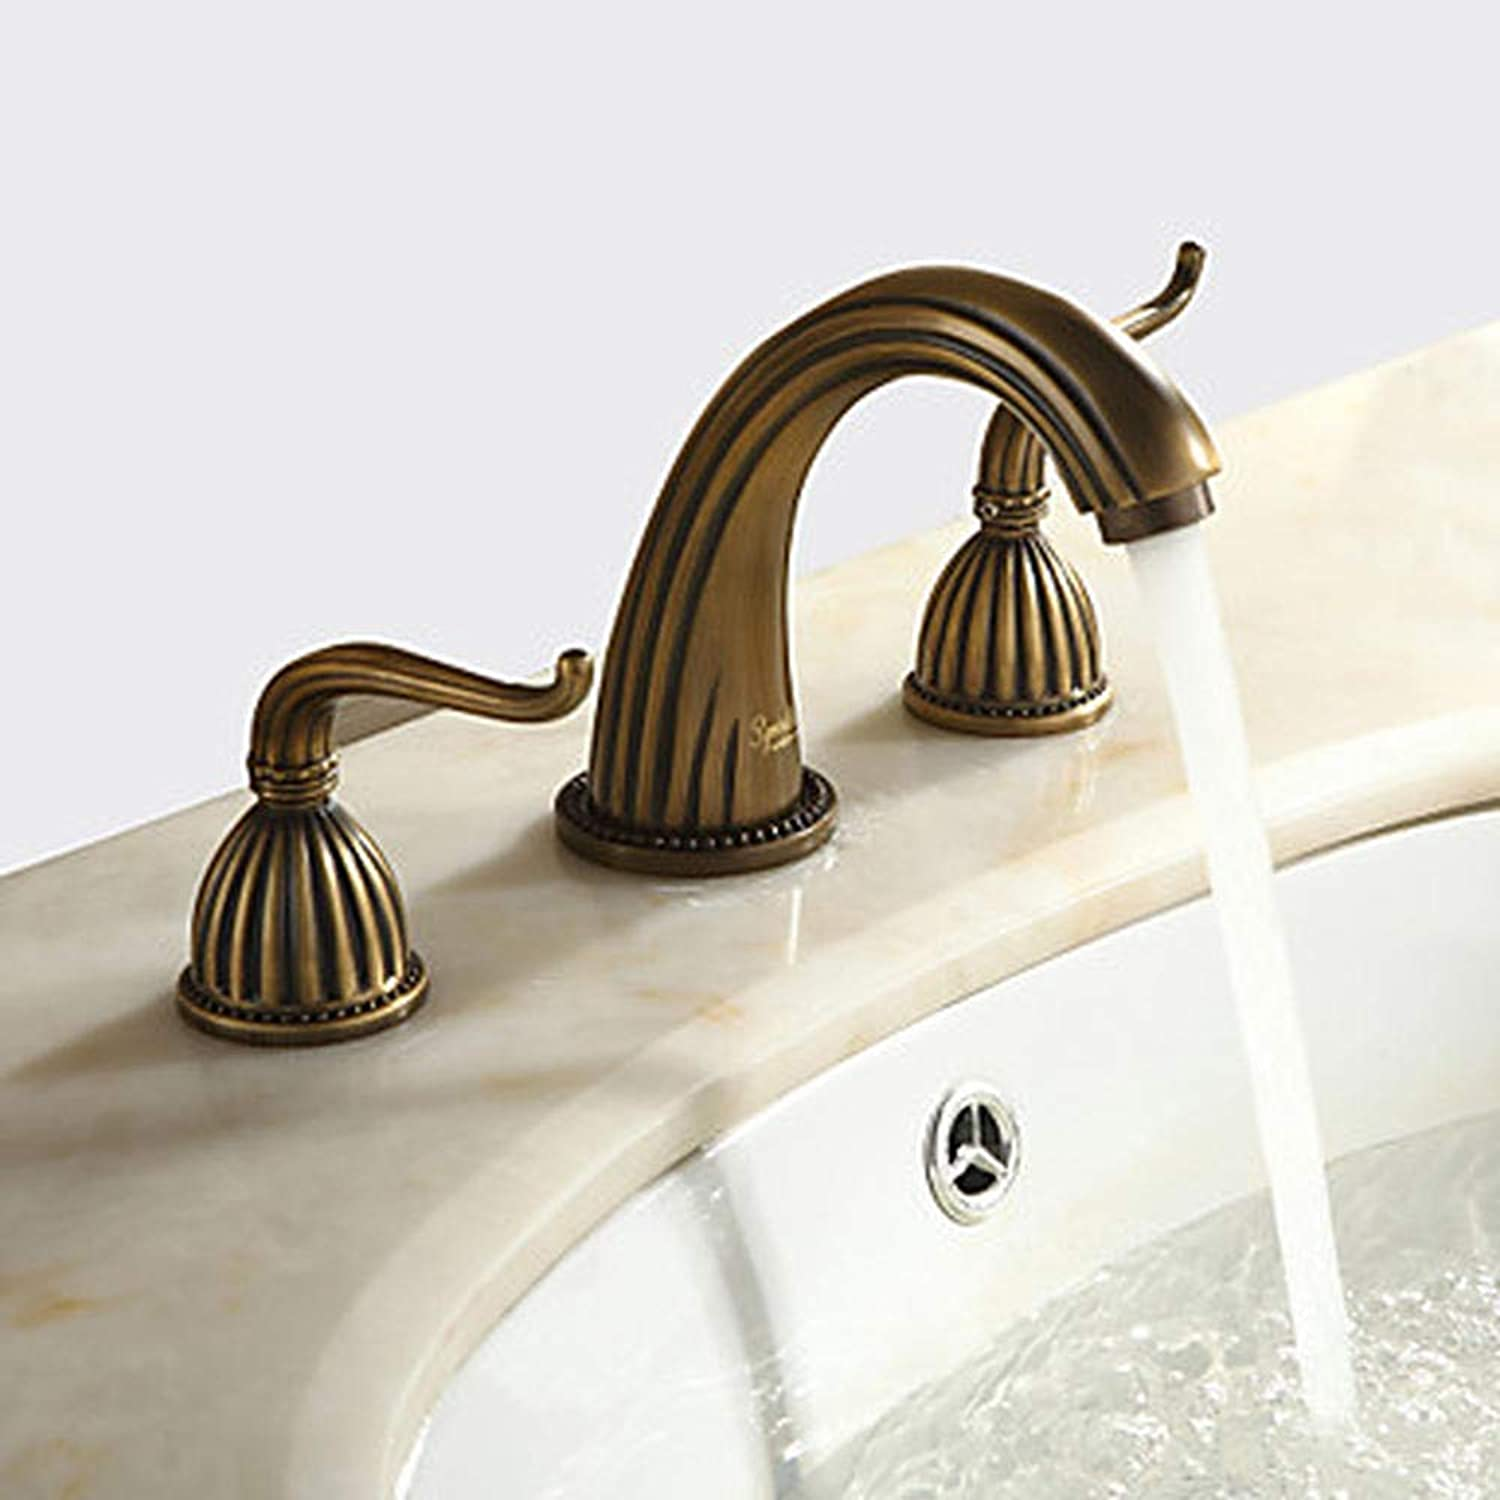 1279 Sprink Sink Faucet - Bronze, widely distributed with Three Holes